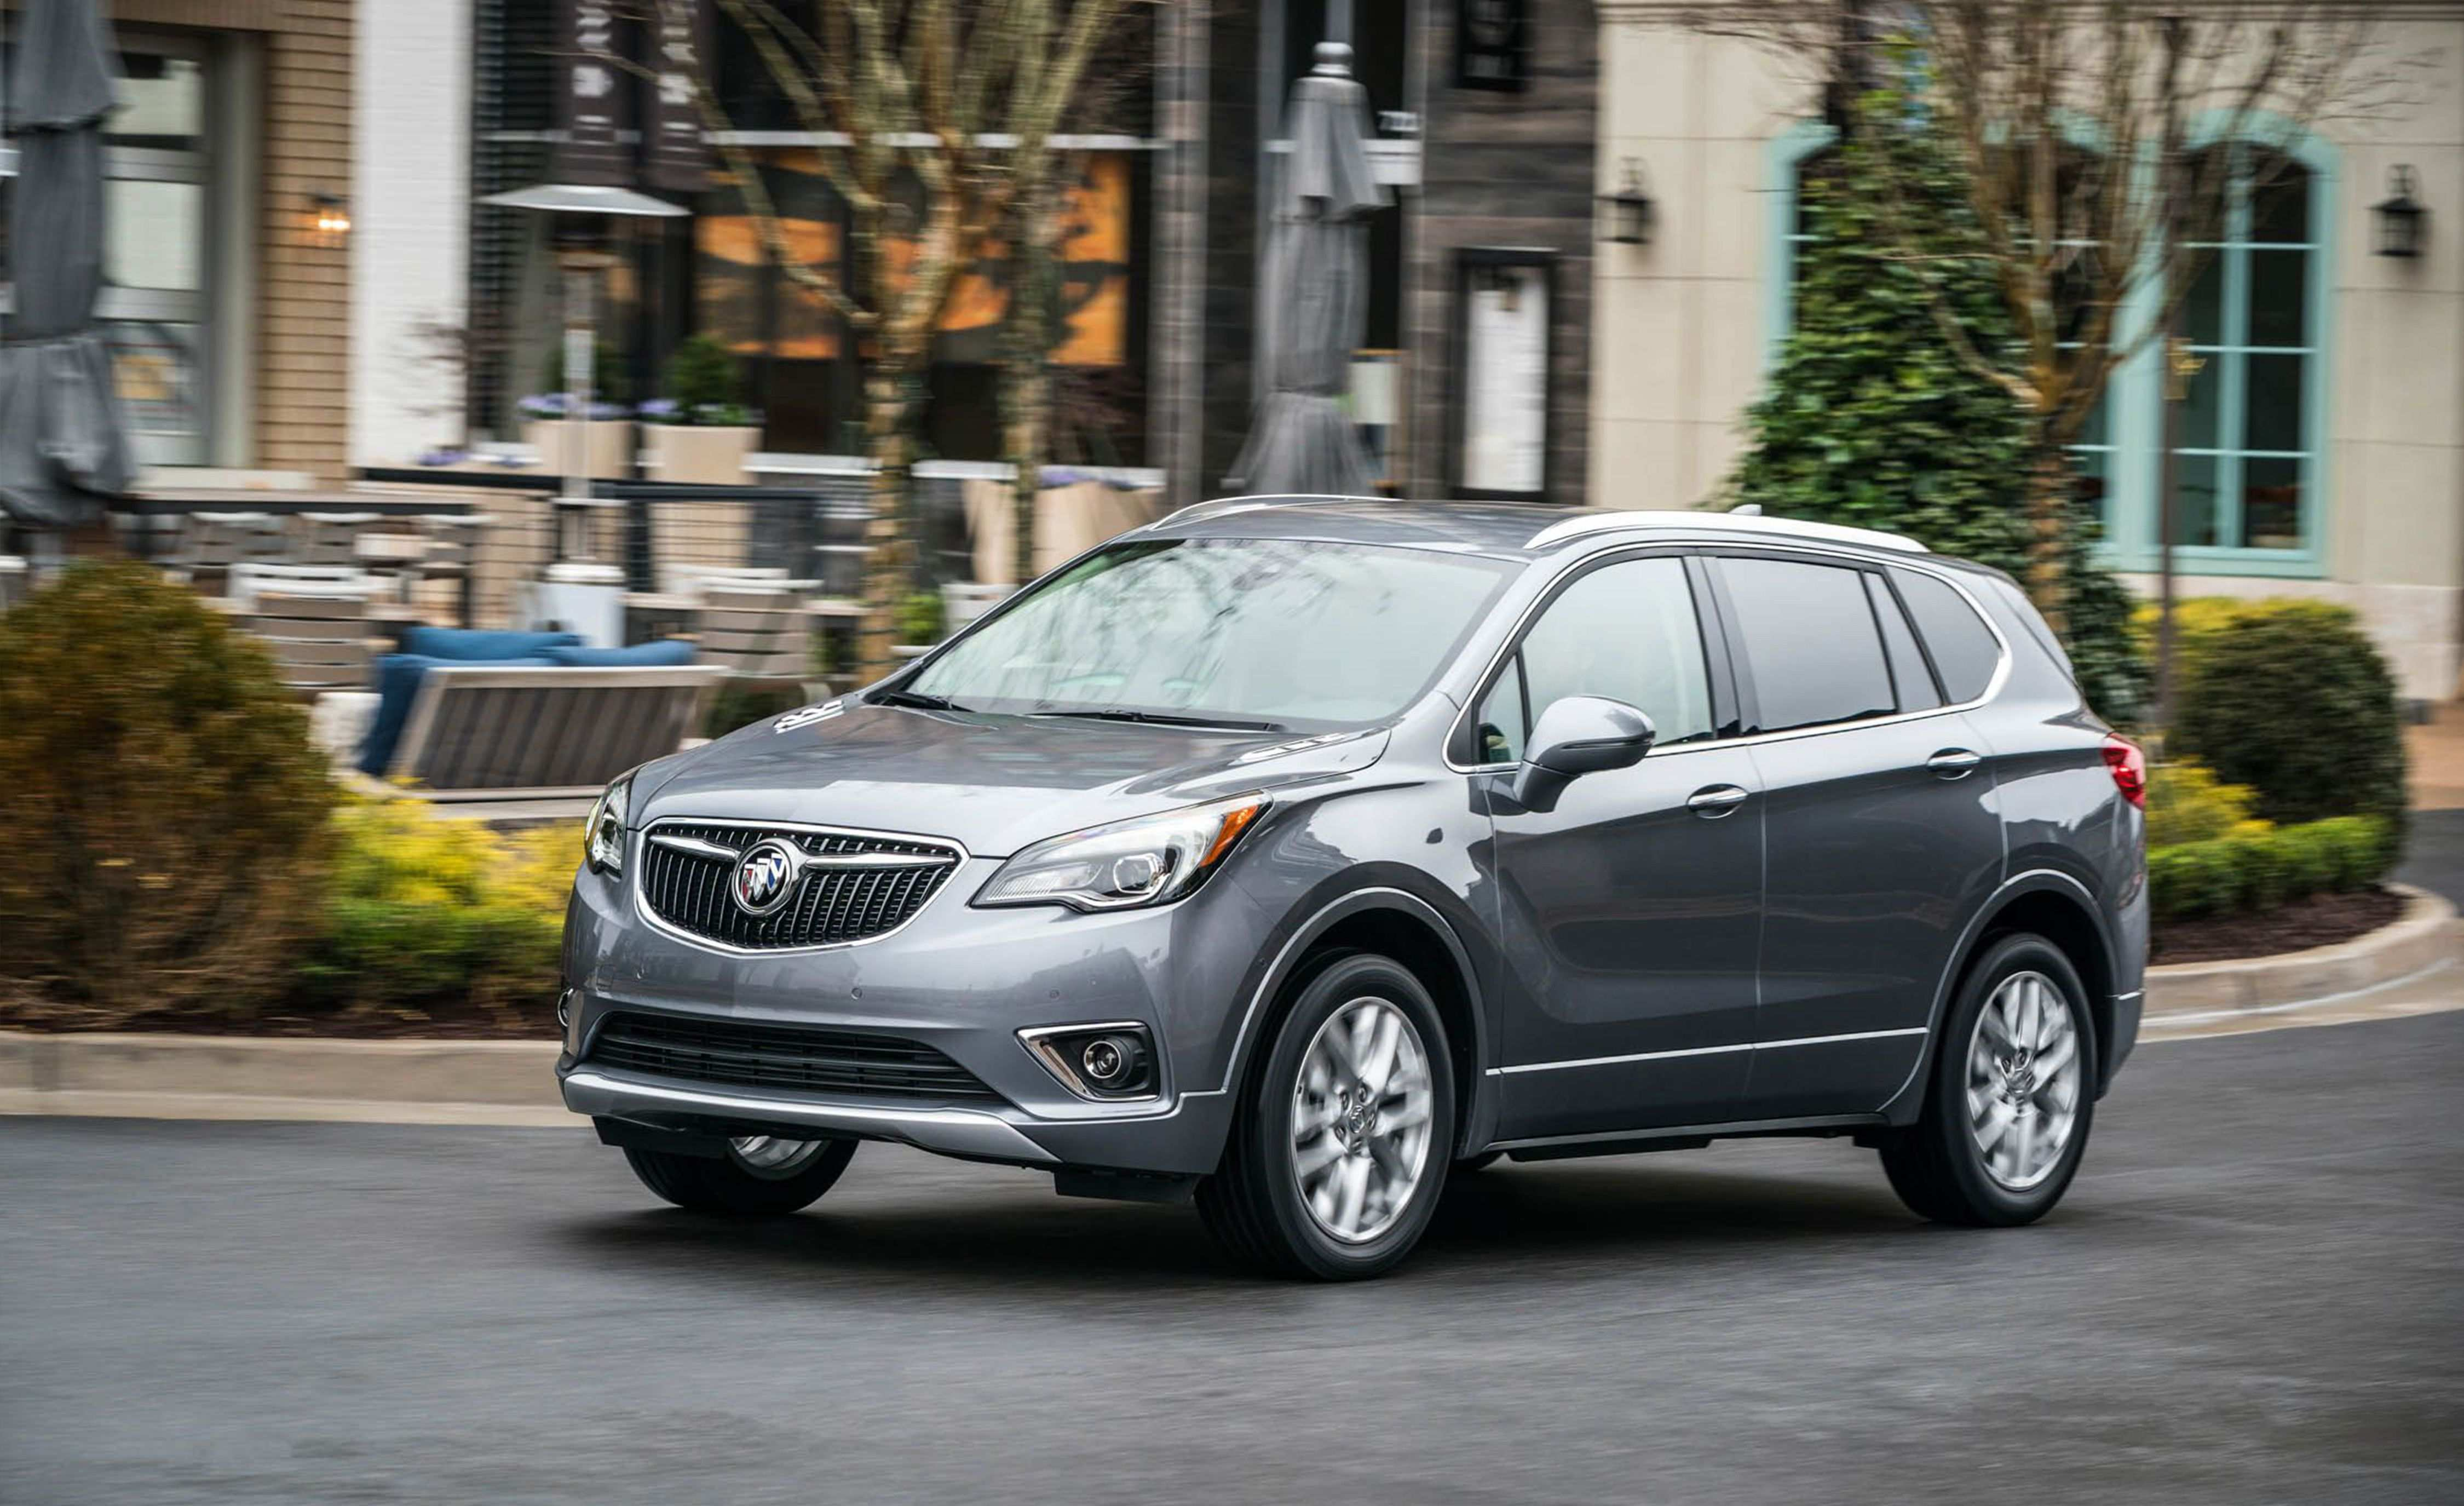 99 The The Buick Encore 2019 Brochure Price Research New by The Buick Encore 2019 Brochure Price